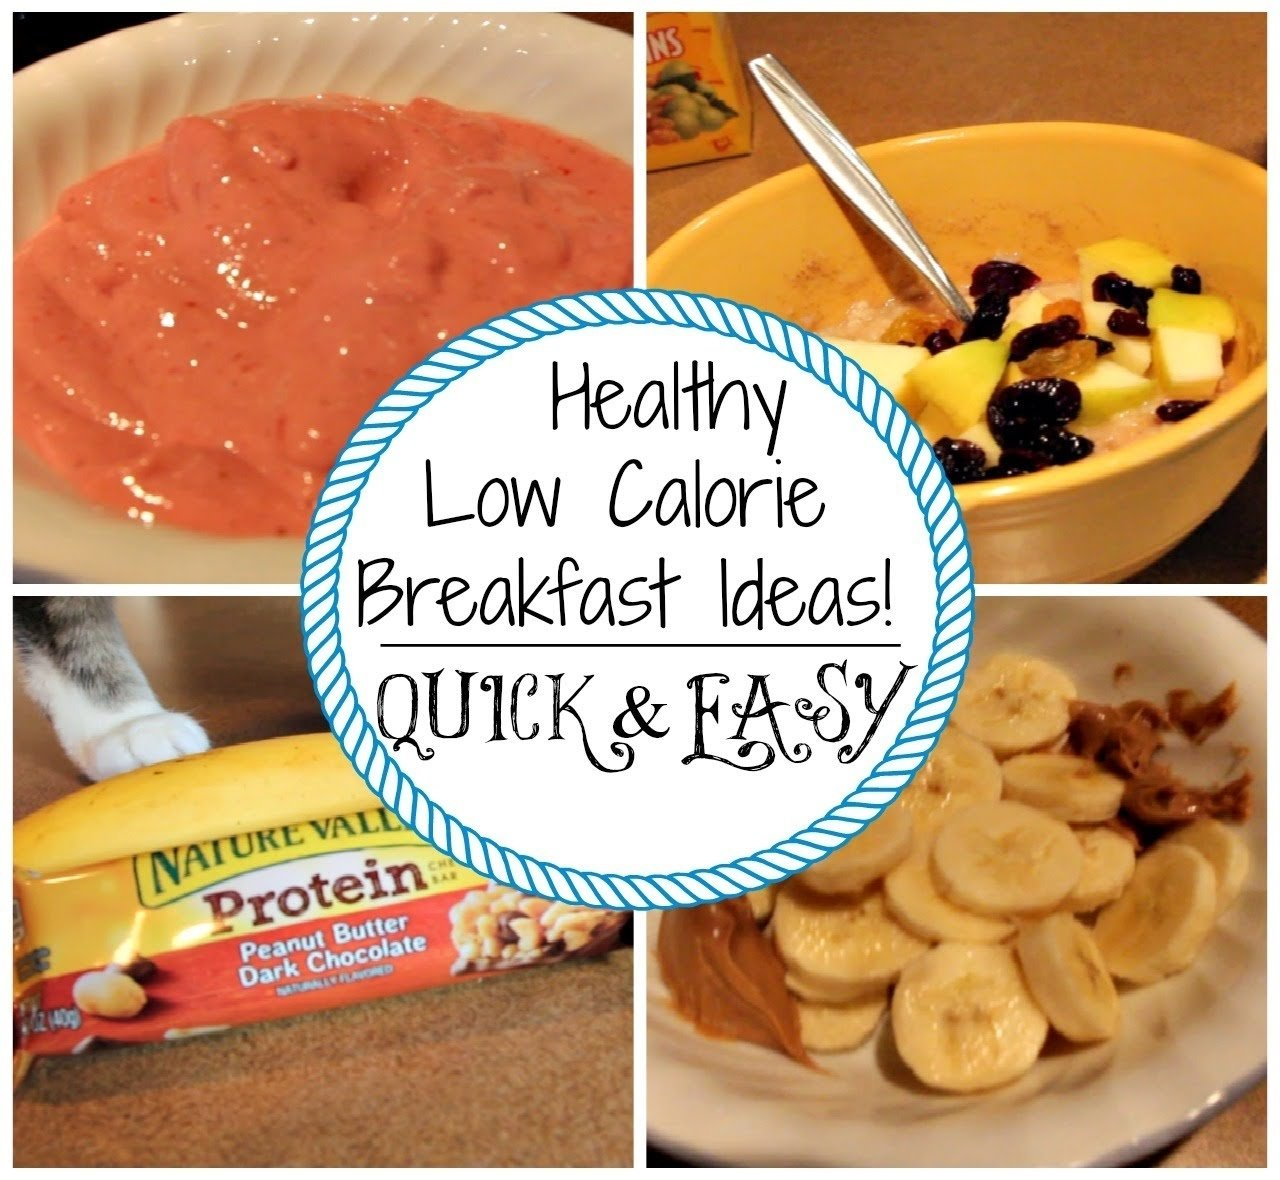 10 Fabulous Breakfast Ideas Under 300 Calories healthy breakfast ideas low calorie youtube